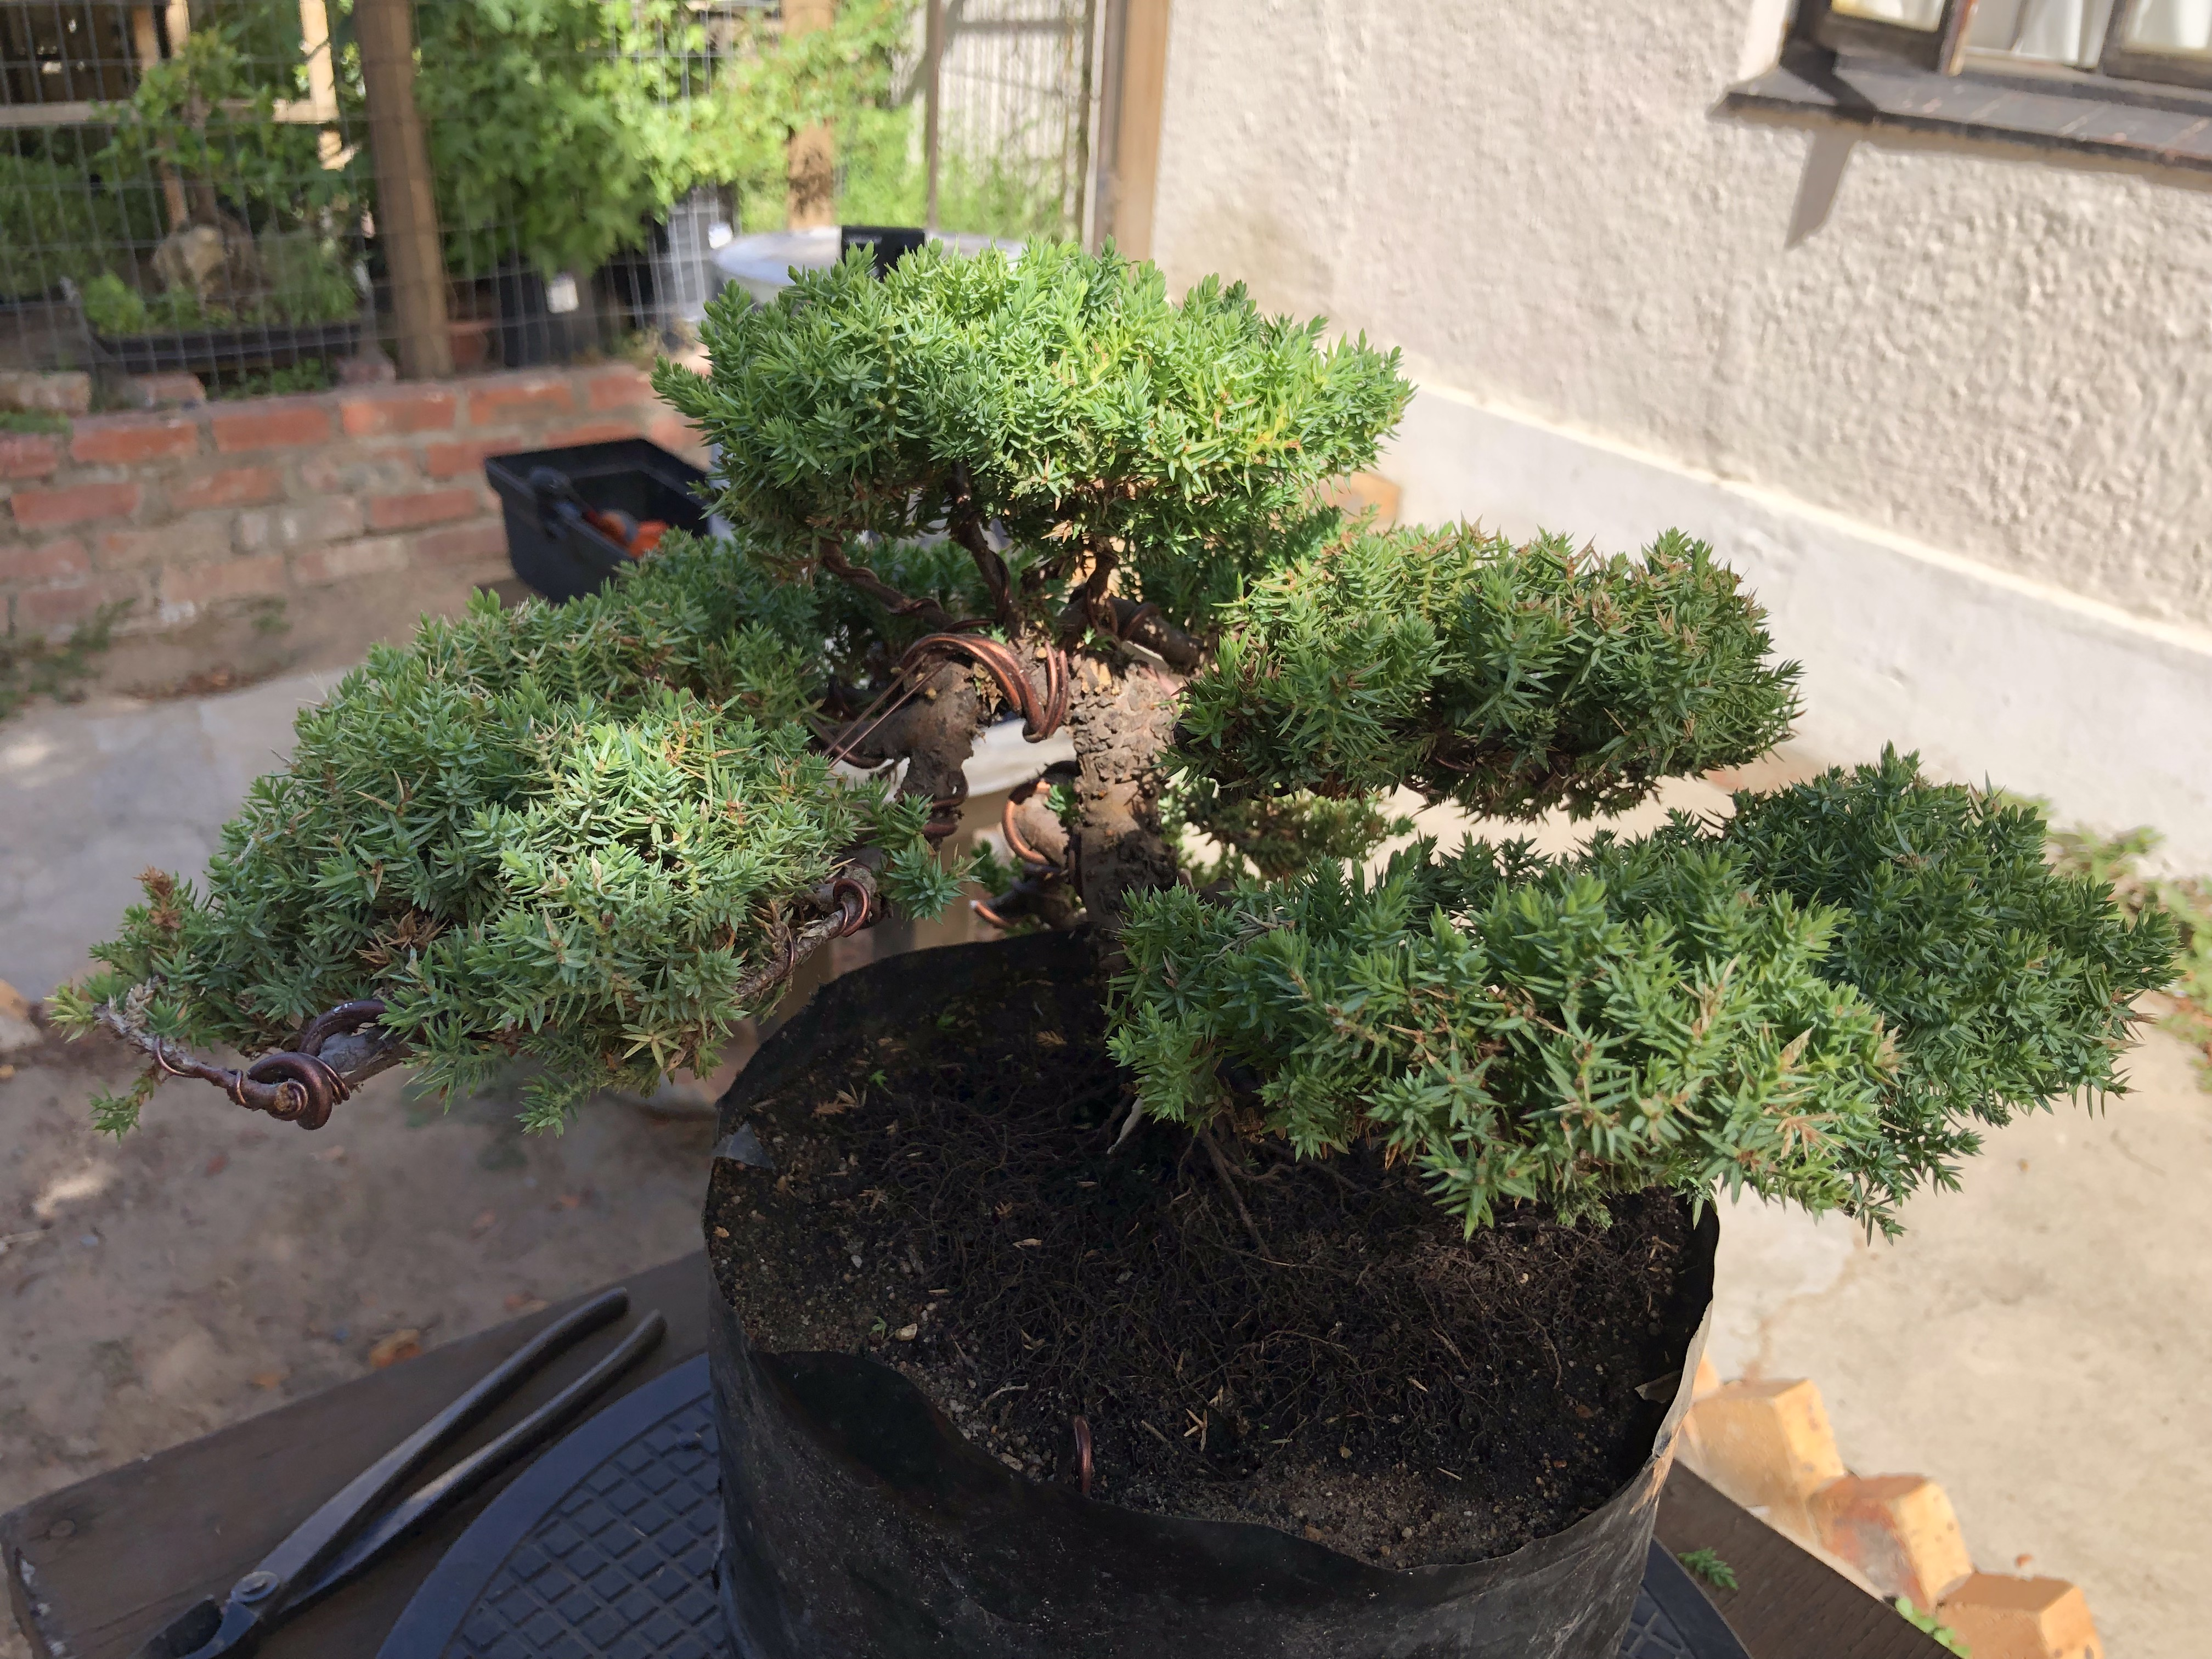 I Have A Bonsai Tree How Do I Keep It In Shape Here Are A Few Basic Steps To Keep Your Bonsai In Good Shape Bonsaiwithromano